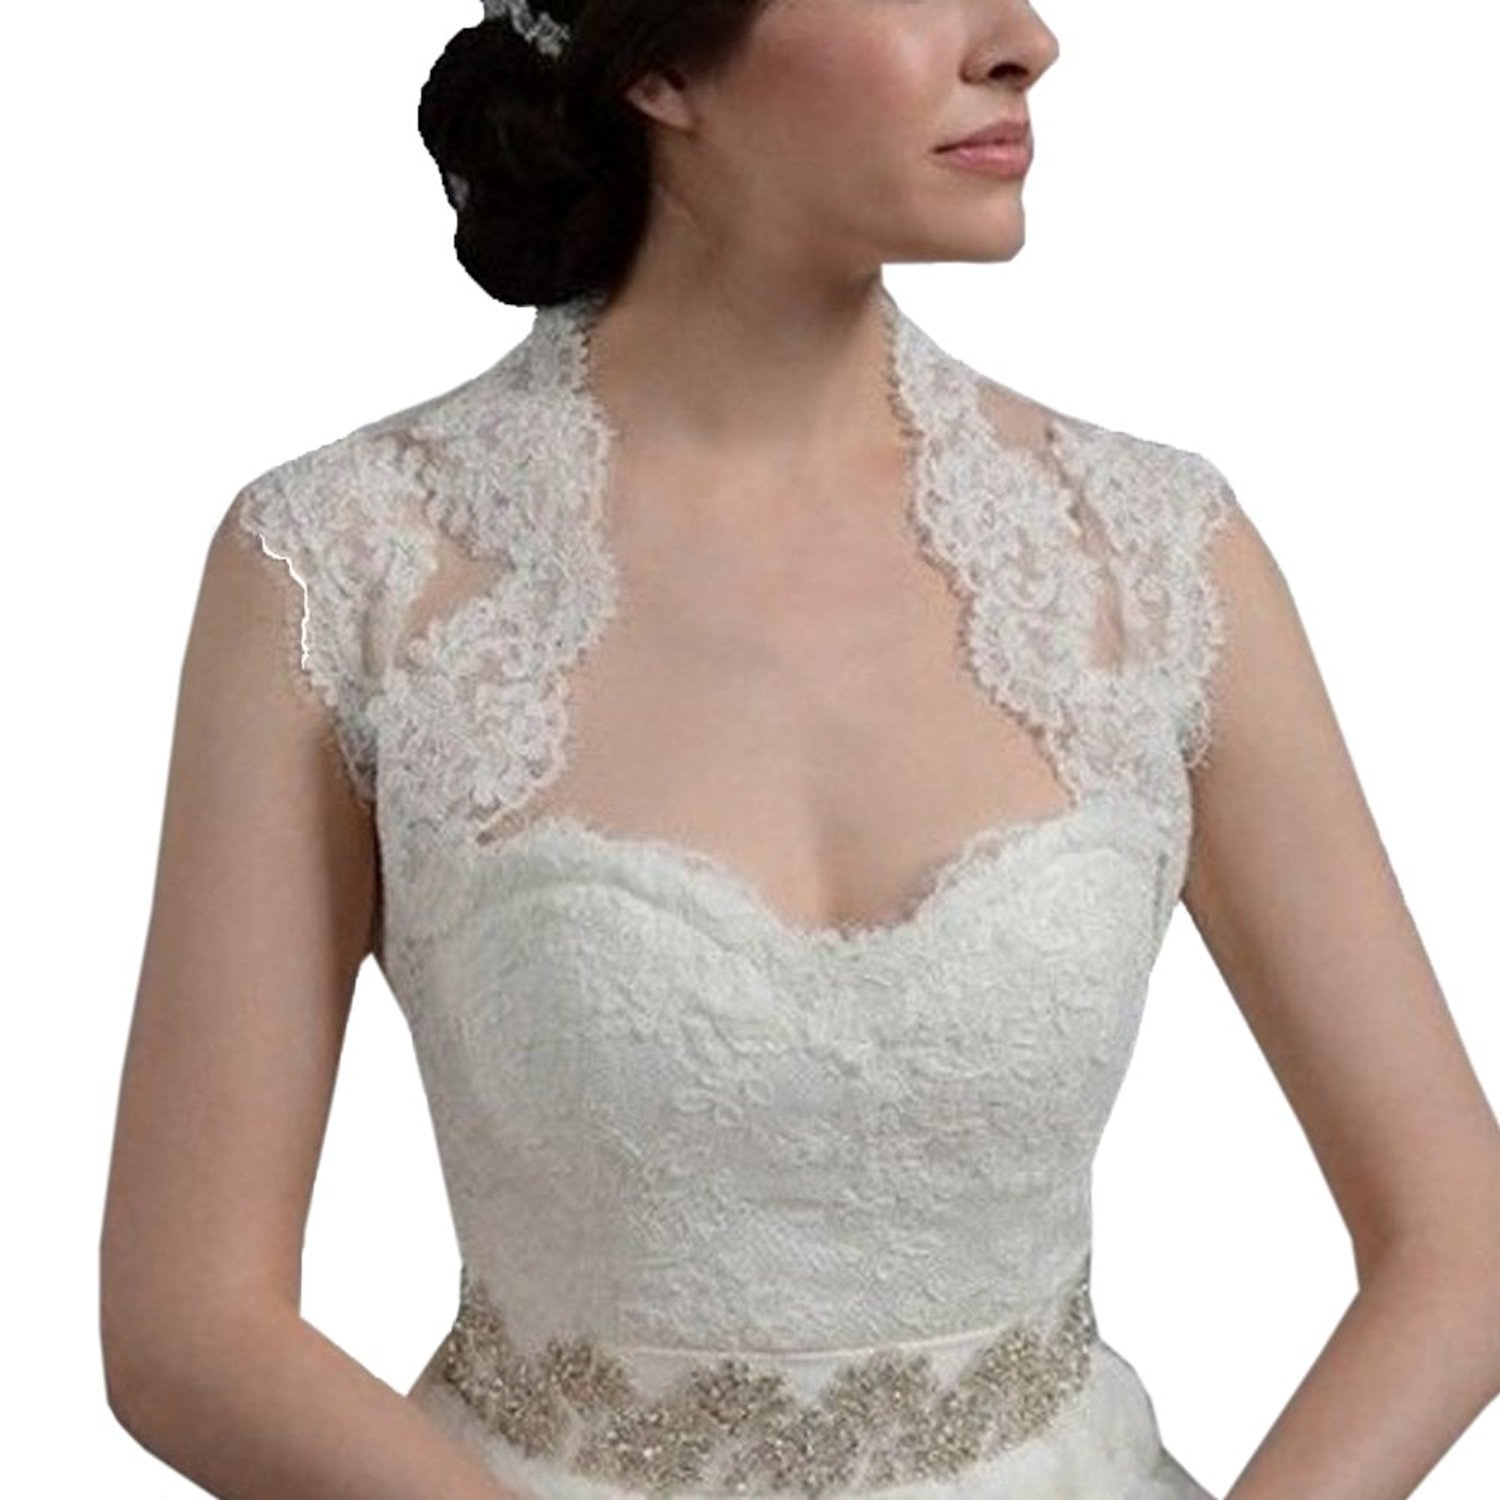 DEFEINA Women's Lace Short Sleeve Backless Bolero Jacket Wedding Bridal Wraps